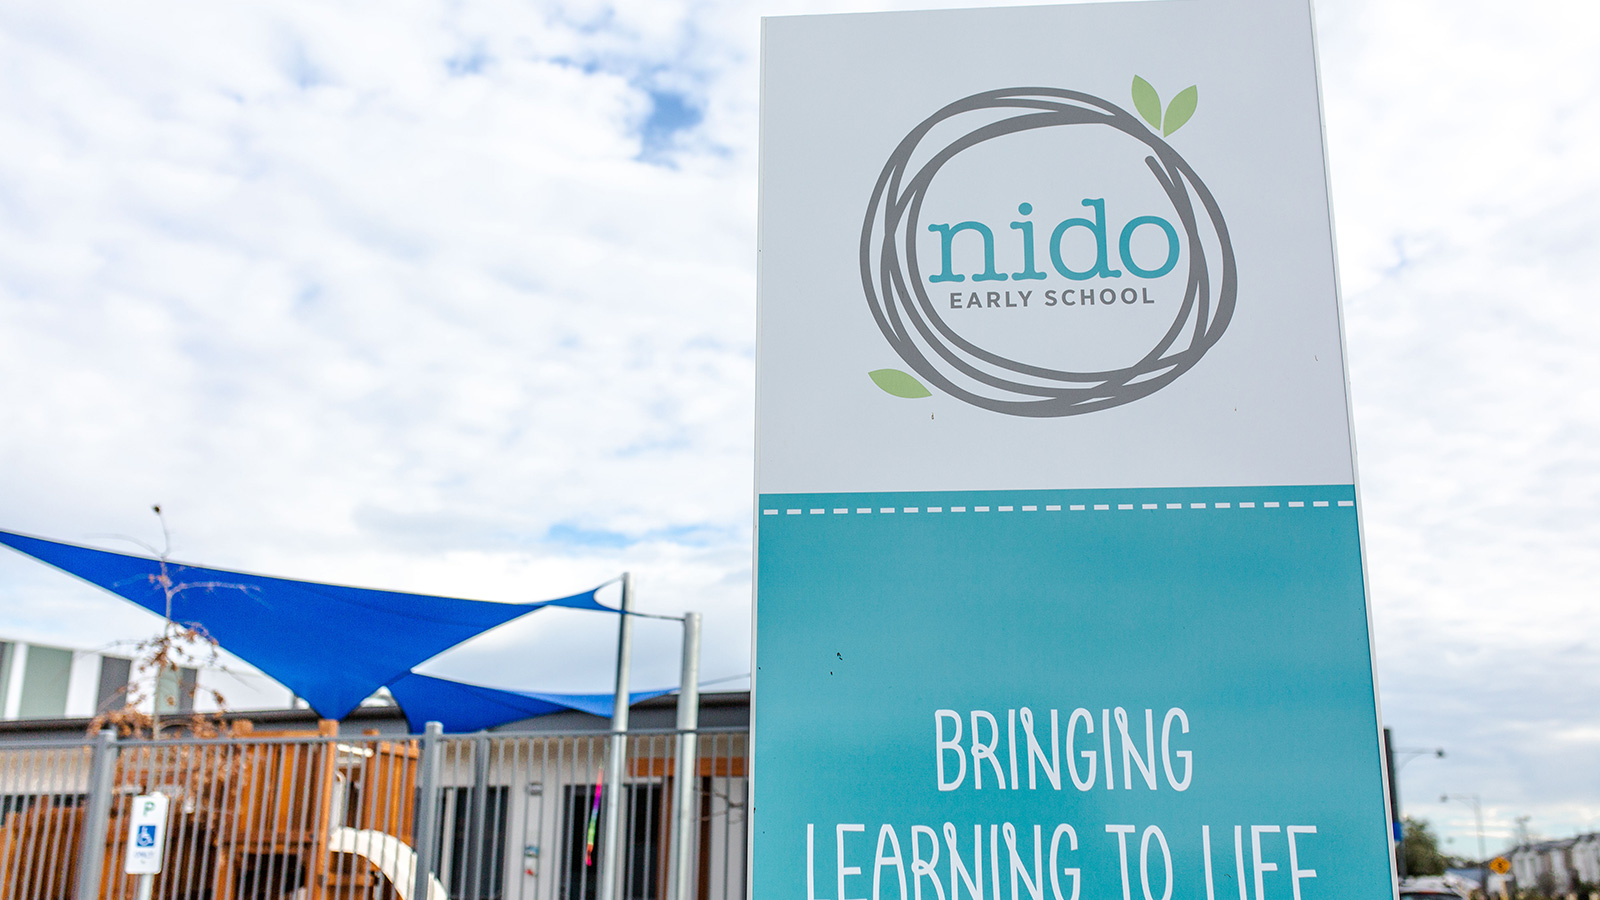 nido-early-school-aveley-08